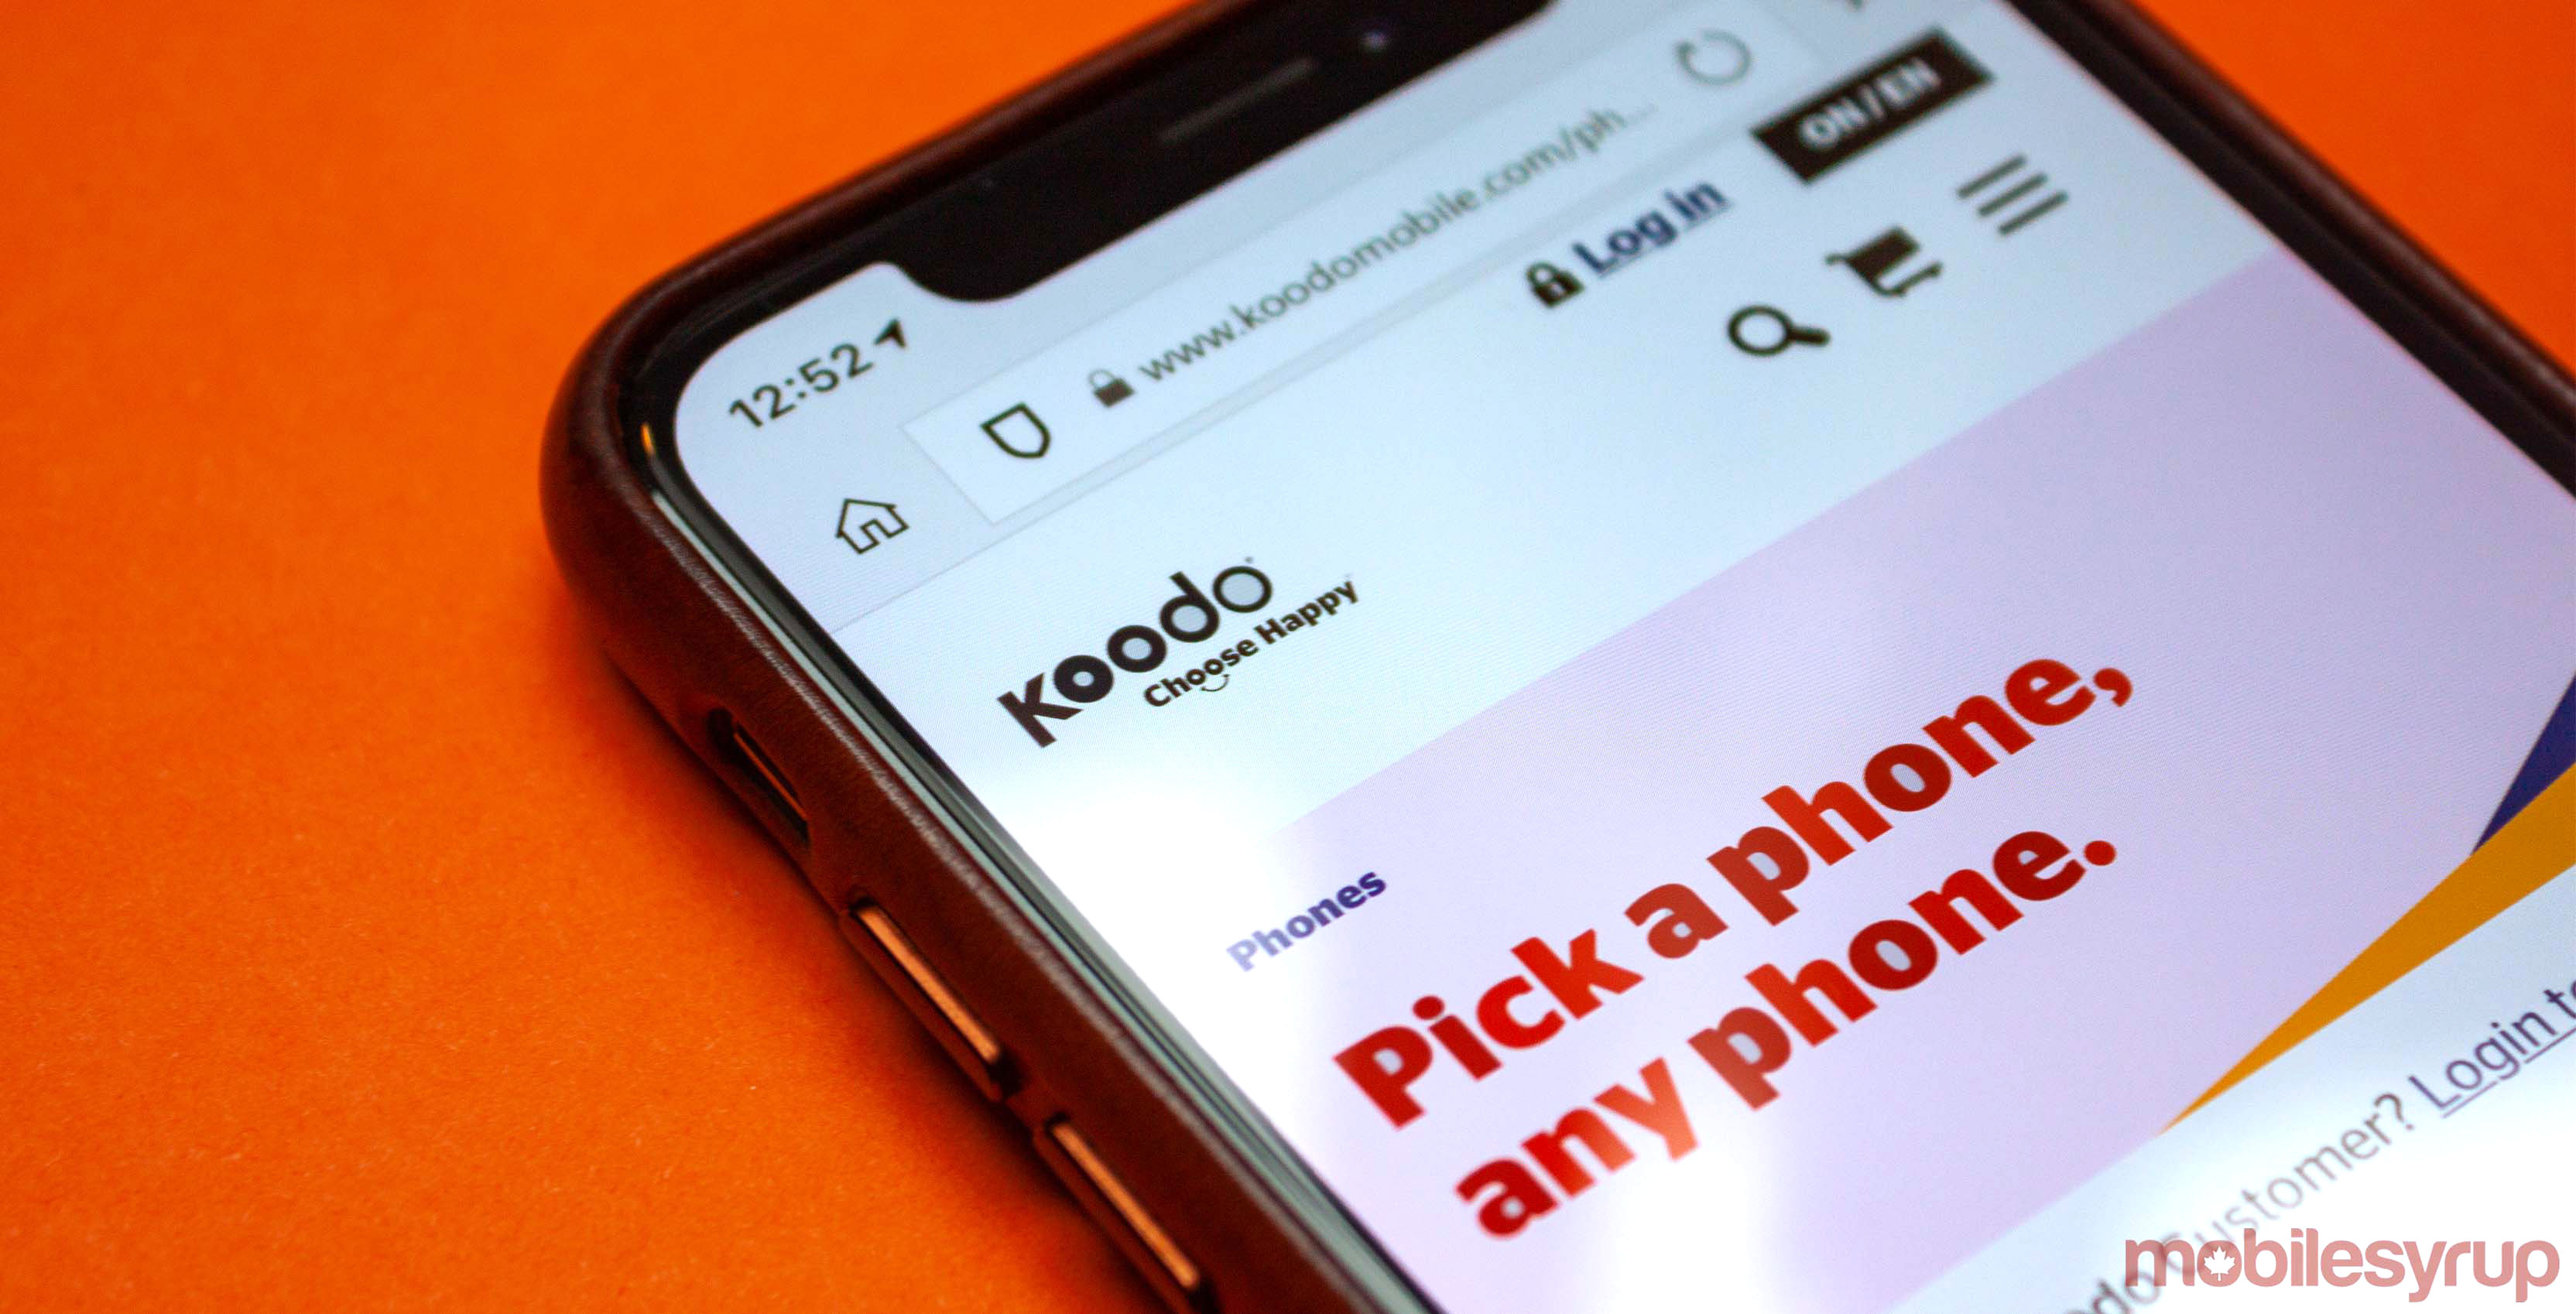 Some Koodo Users Getting Targeted With 5gb Of Data For 5